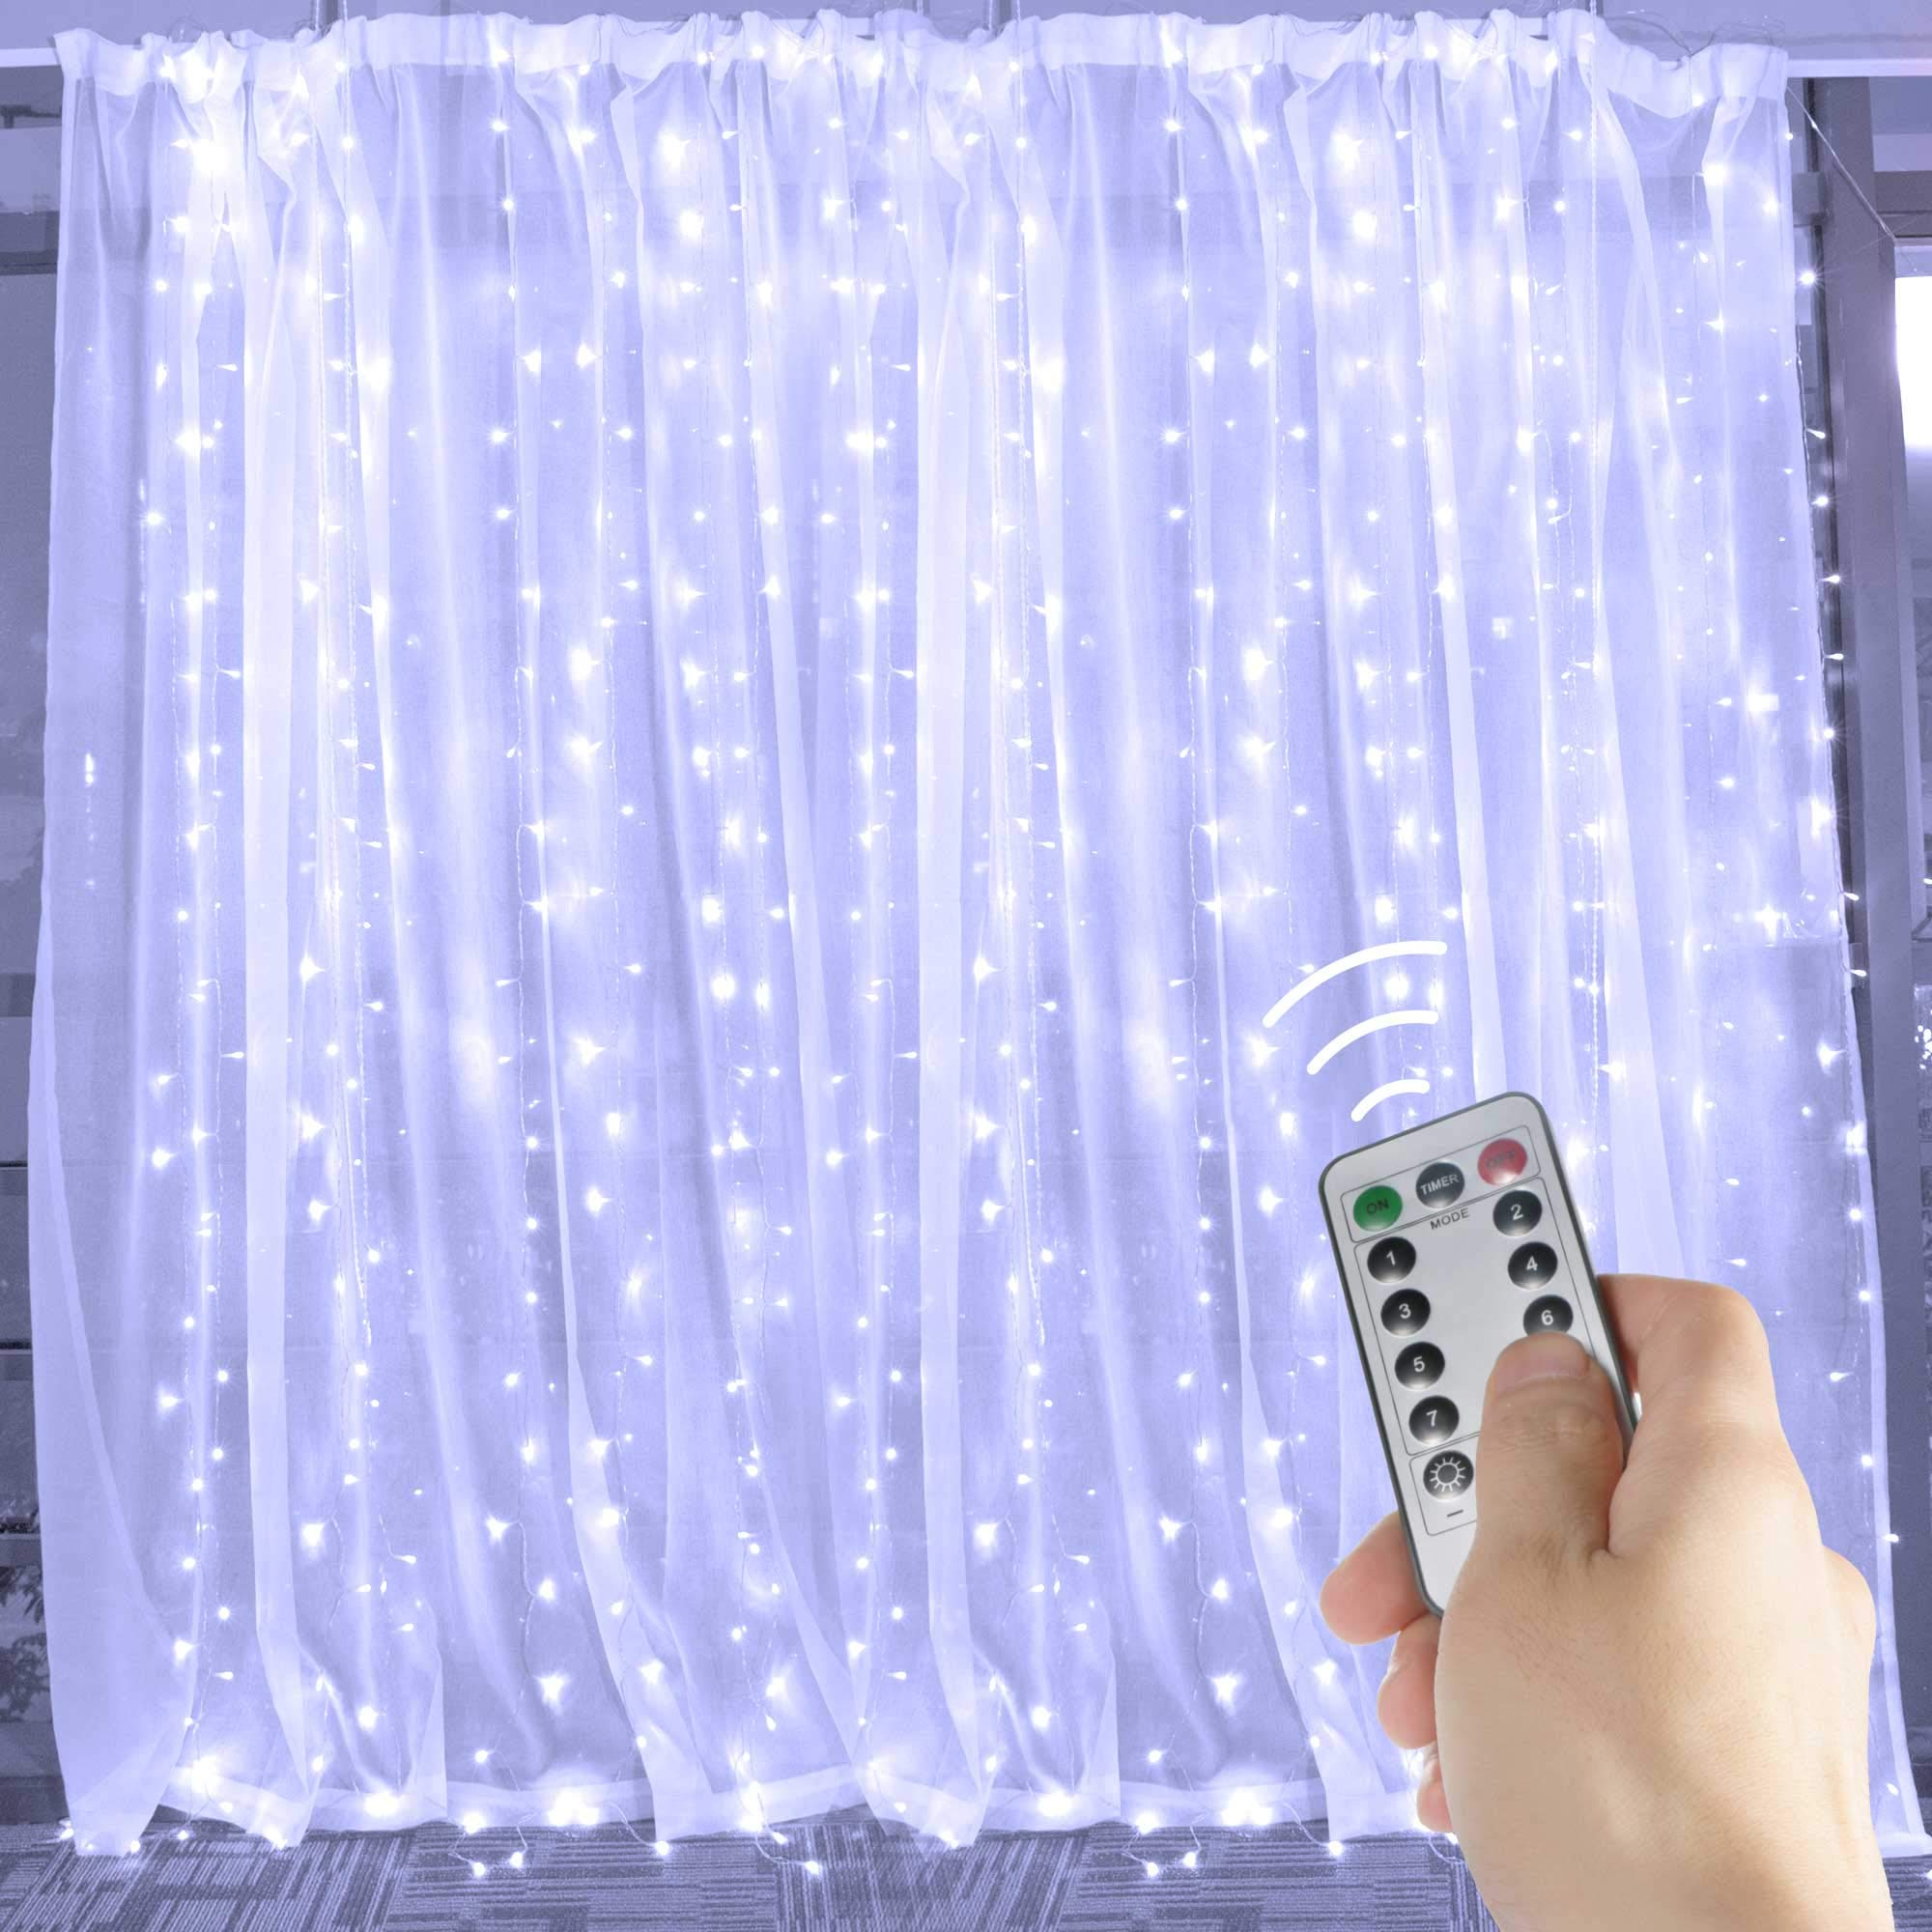 Brightown String Lights Window Curtain,300 LED Icicle Fairy Twinkle Starry Lights with Remote and Timer-UL Listed for Indoor and Outdoor, Wedding, Home Bedroom Wall Decoration, Party (Pure White)